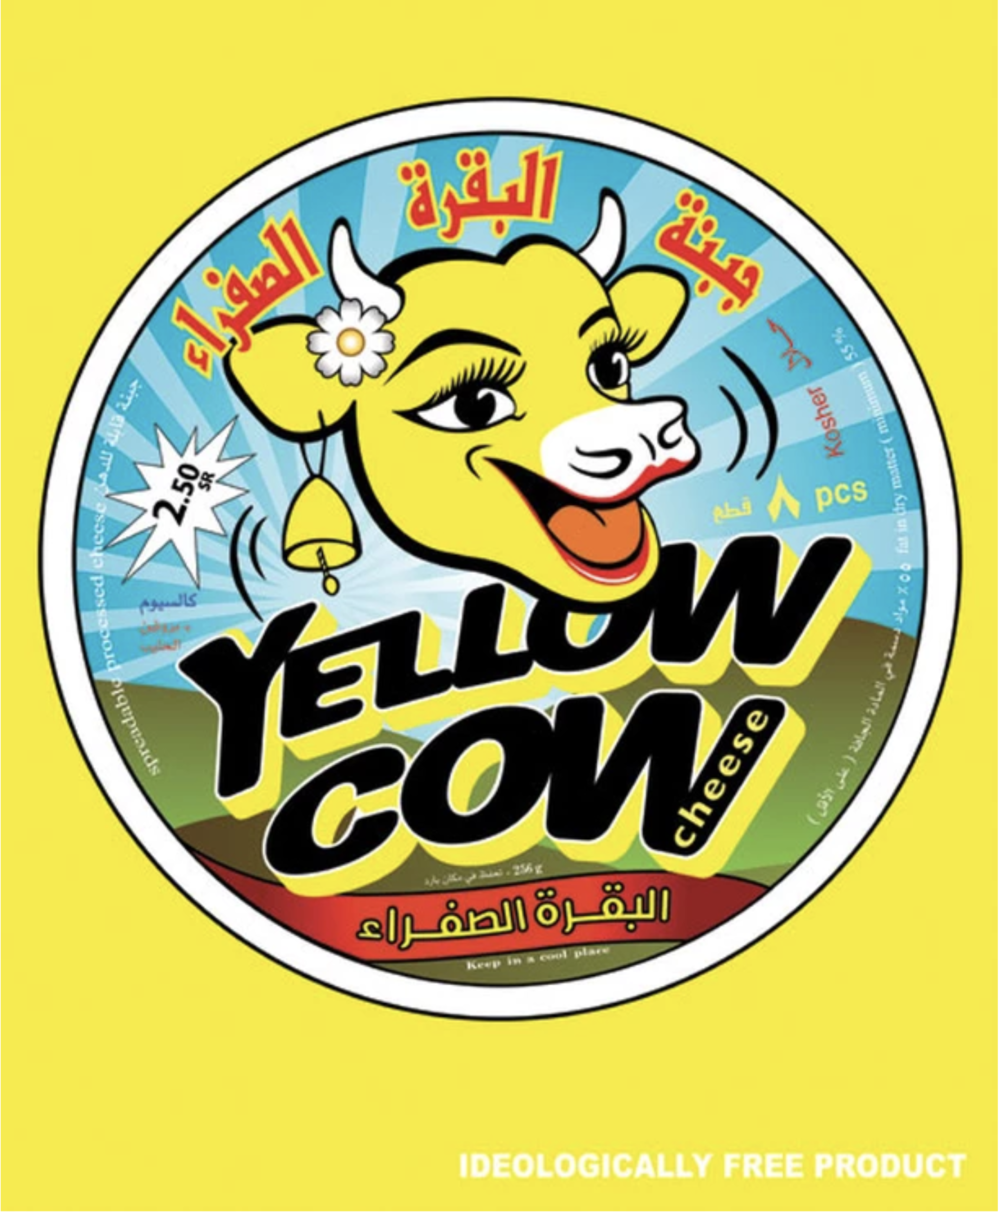 Ahmed Mater, Yellow Cow Cheese (Yellow) 2010. Courtesy of the artist.